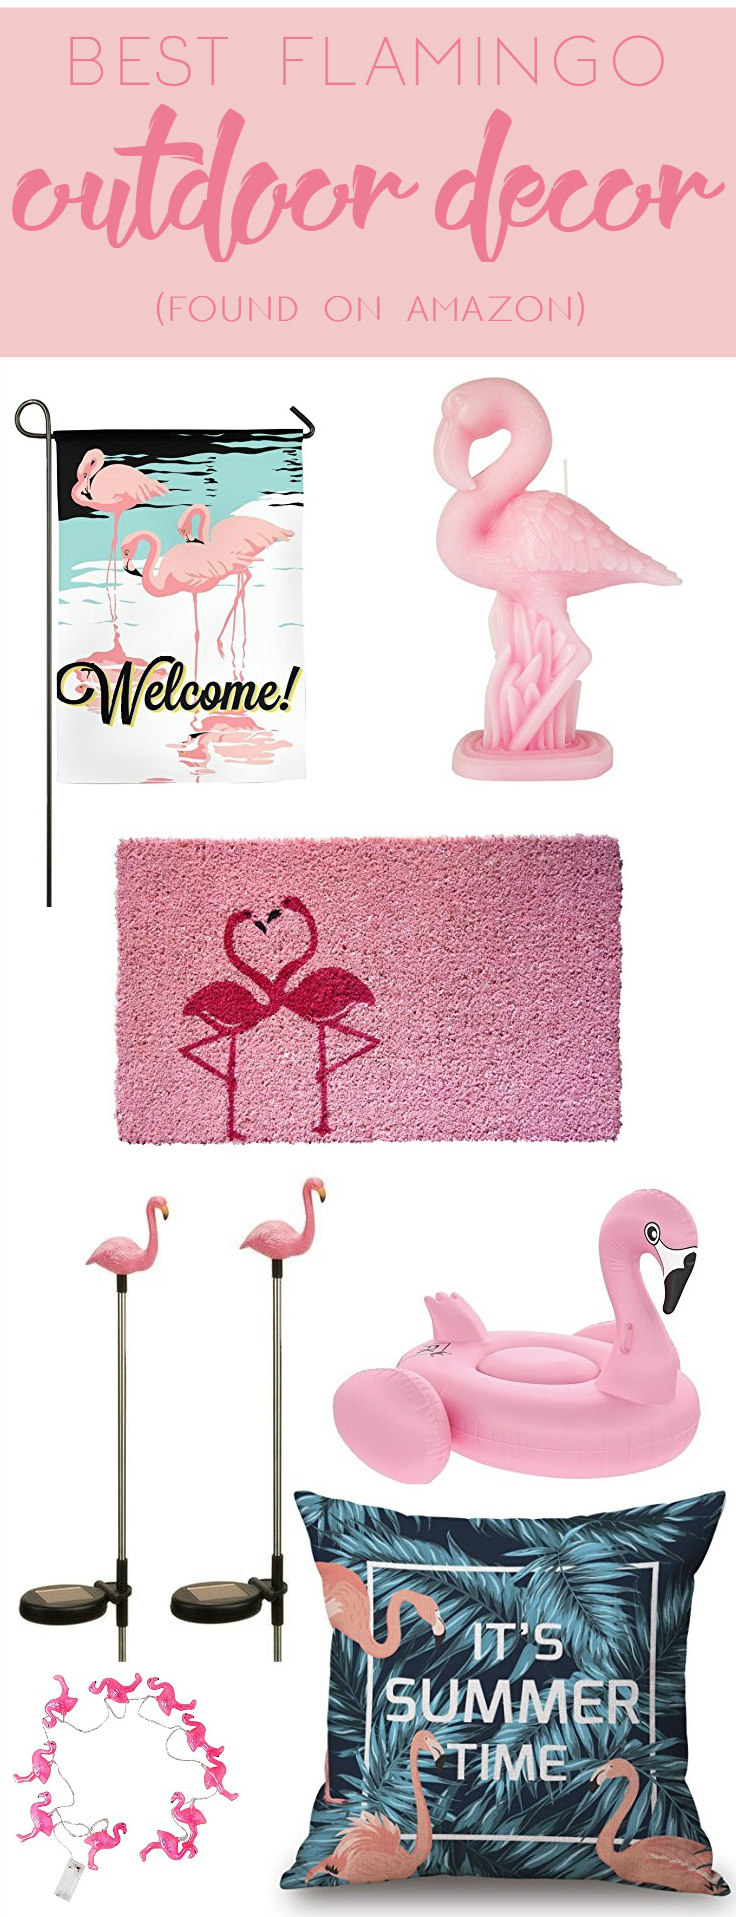 Ever Since I Was Little Have Loved Flamingos Their Pretty Pink Color And The Way They Stand Tall Proud That Has Always Made Them A Favorite Animal